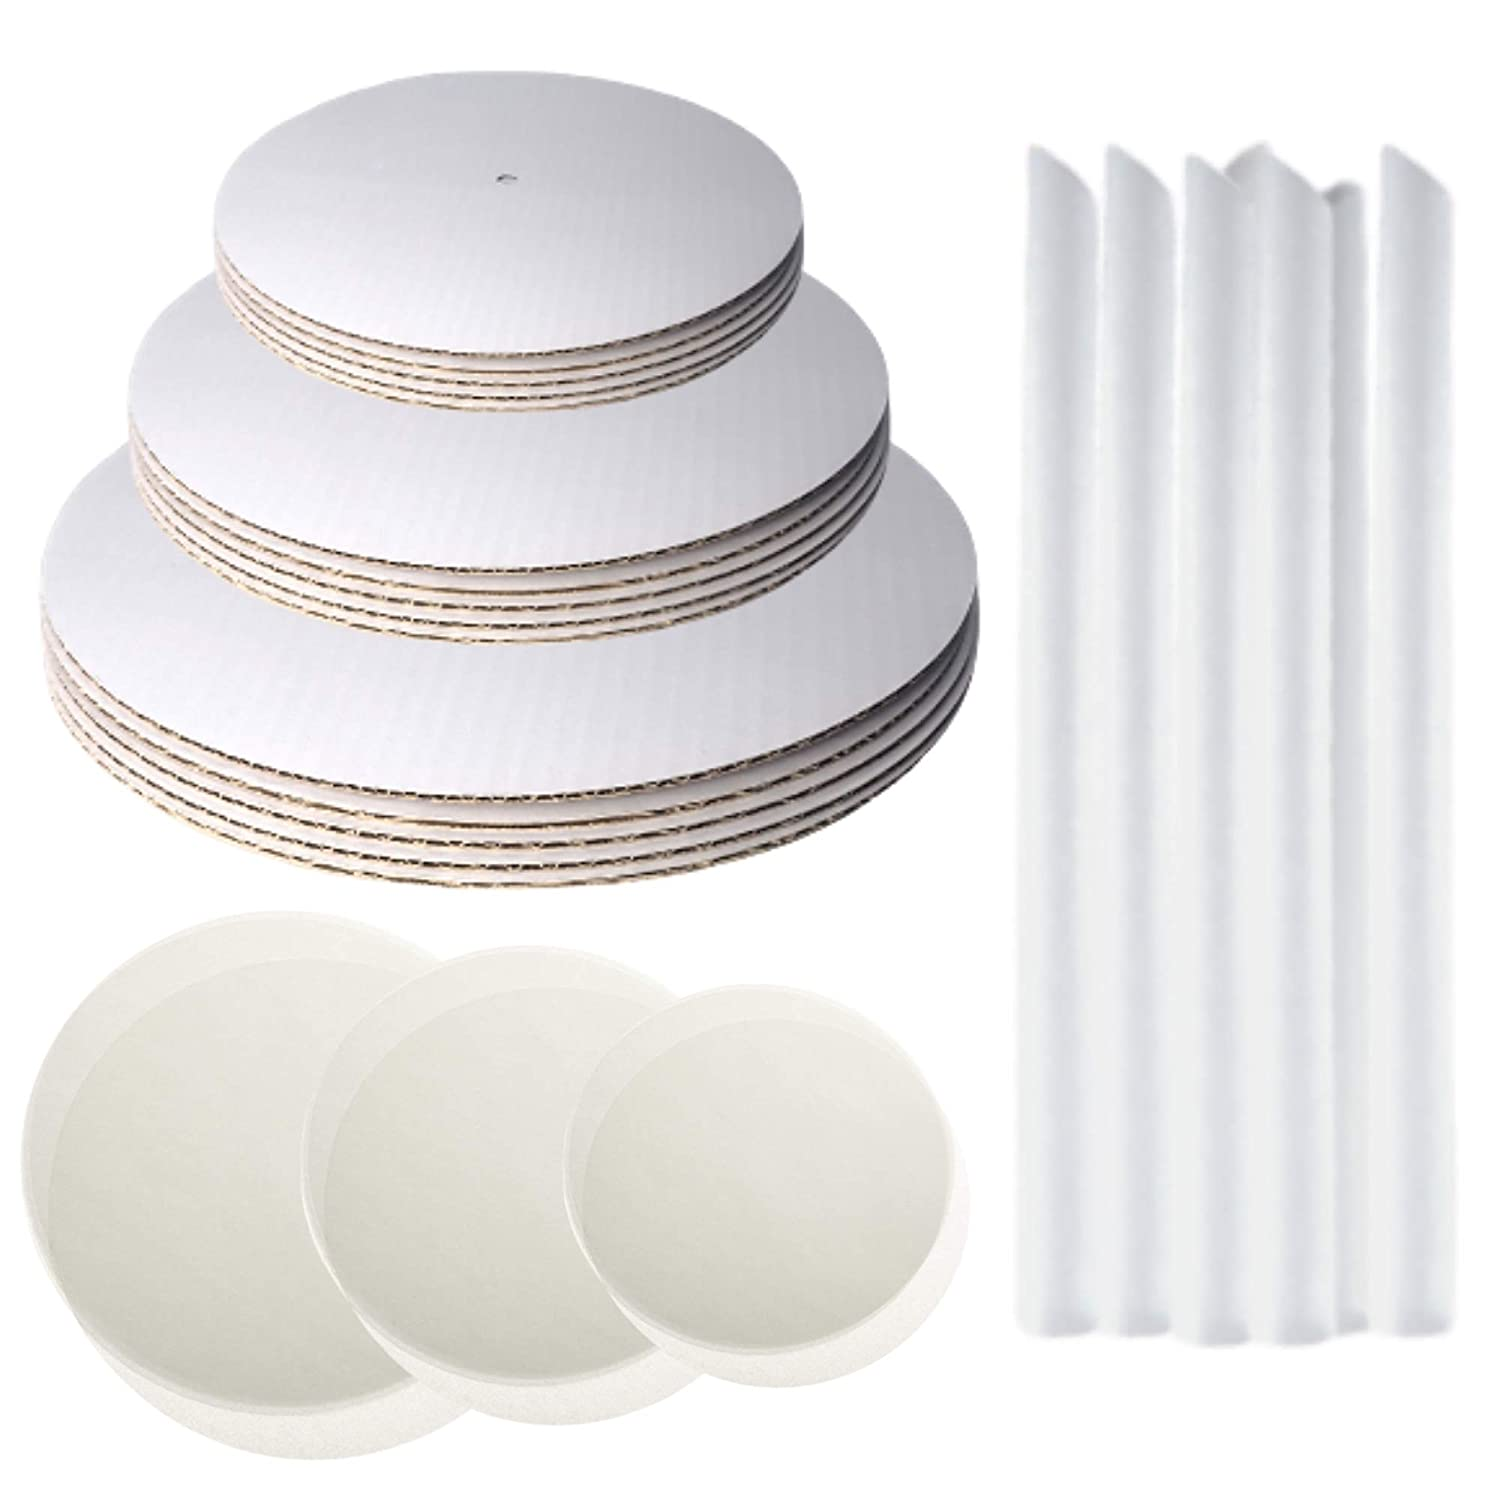 Little Ladle Cake Boards Kit - 10 Inch, 8 Inch, 6 Inch Cake Cardboard Rounds, Parchment Paper Rounds & Boba Straw Cake Dowels - Cake Board Tier Stacking Support - Cake Decorating Supplies - 120 Pcs